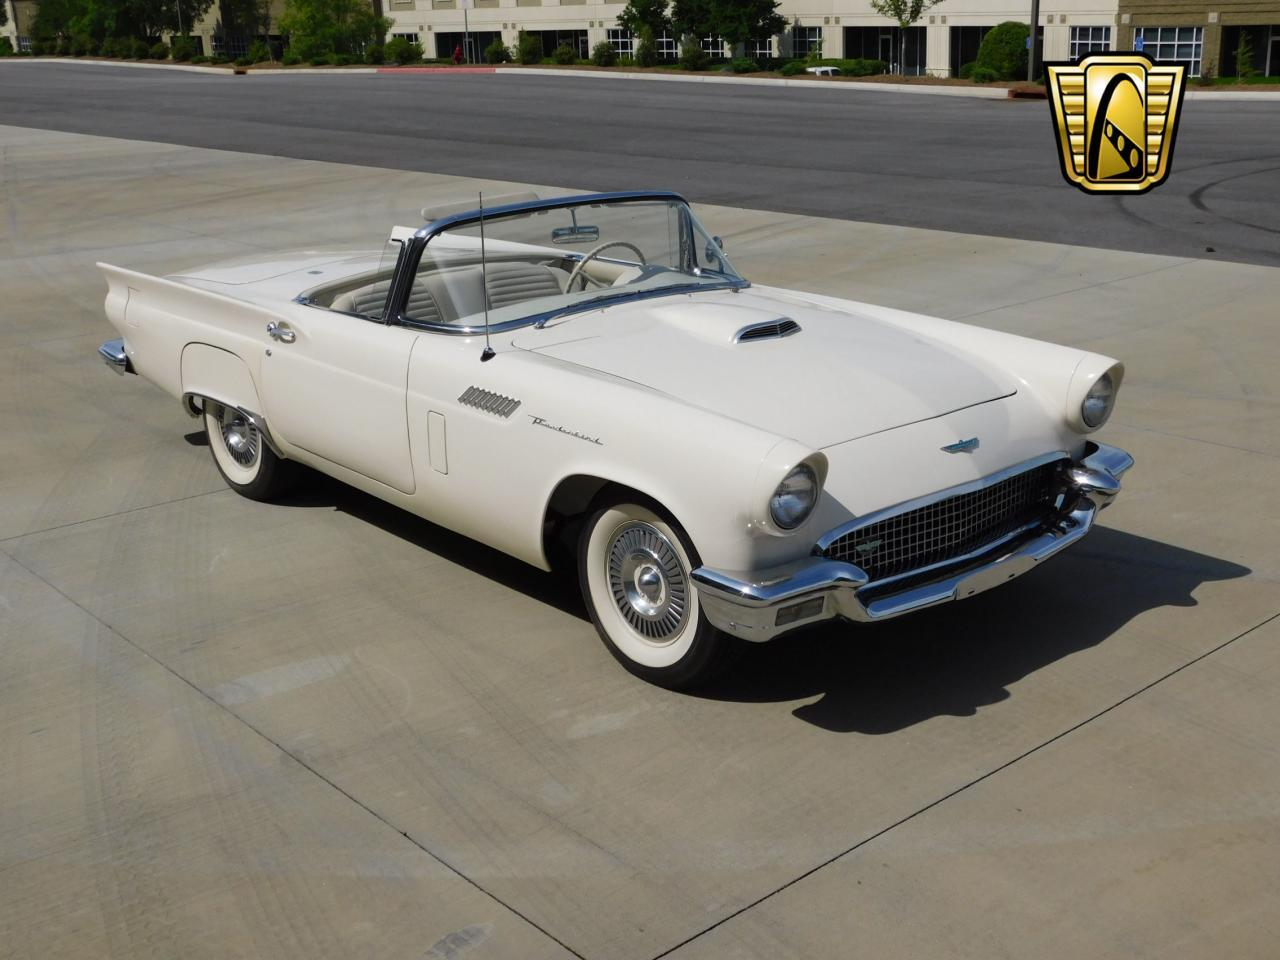 Large Picture of 1957 Ford Thunderbird located in Alpharetta Georgia - $51,000.00 - L77Y